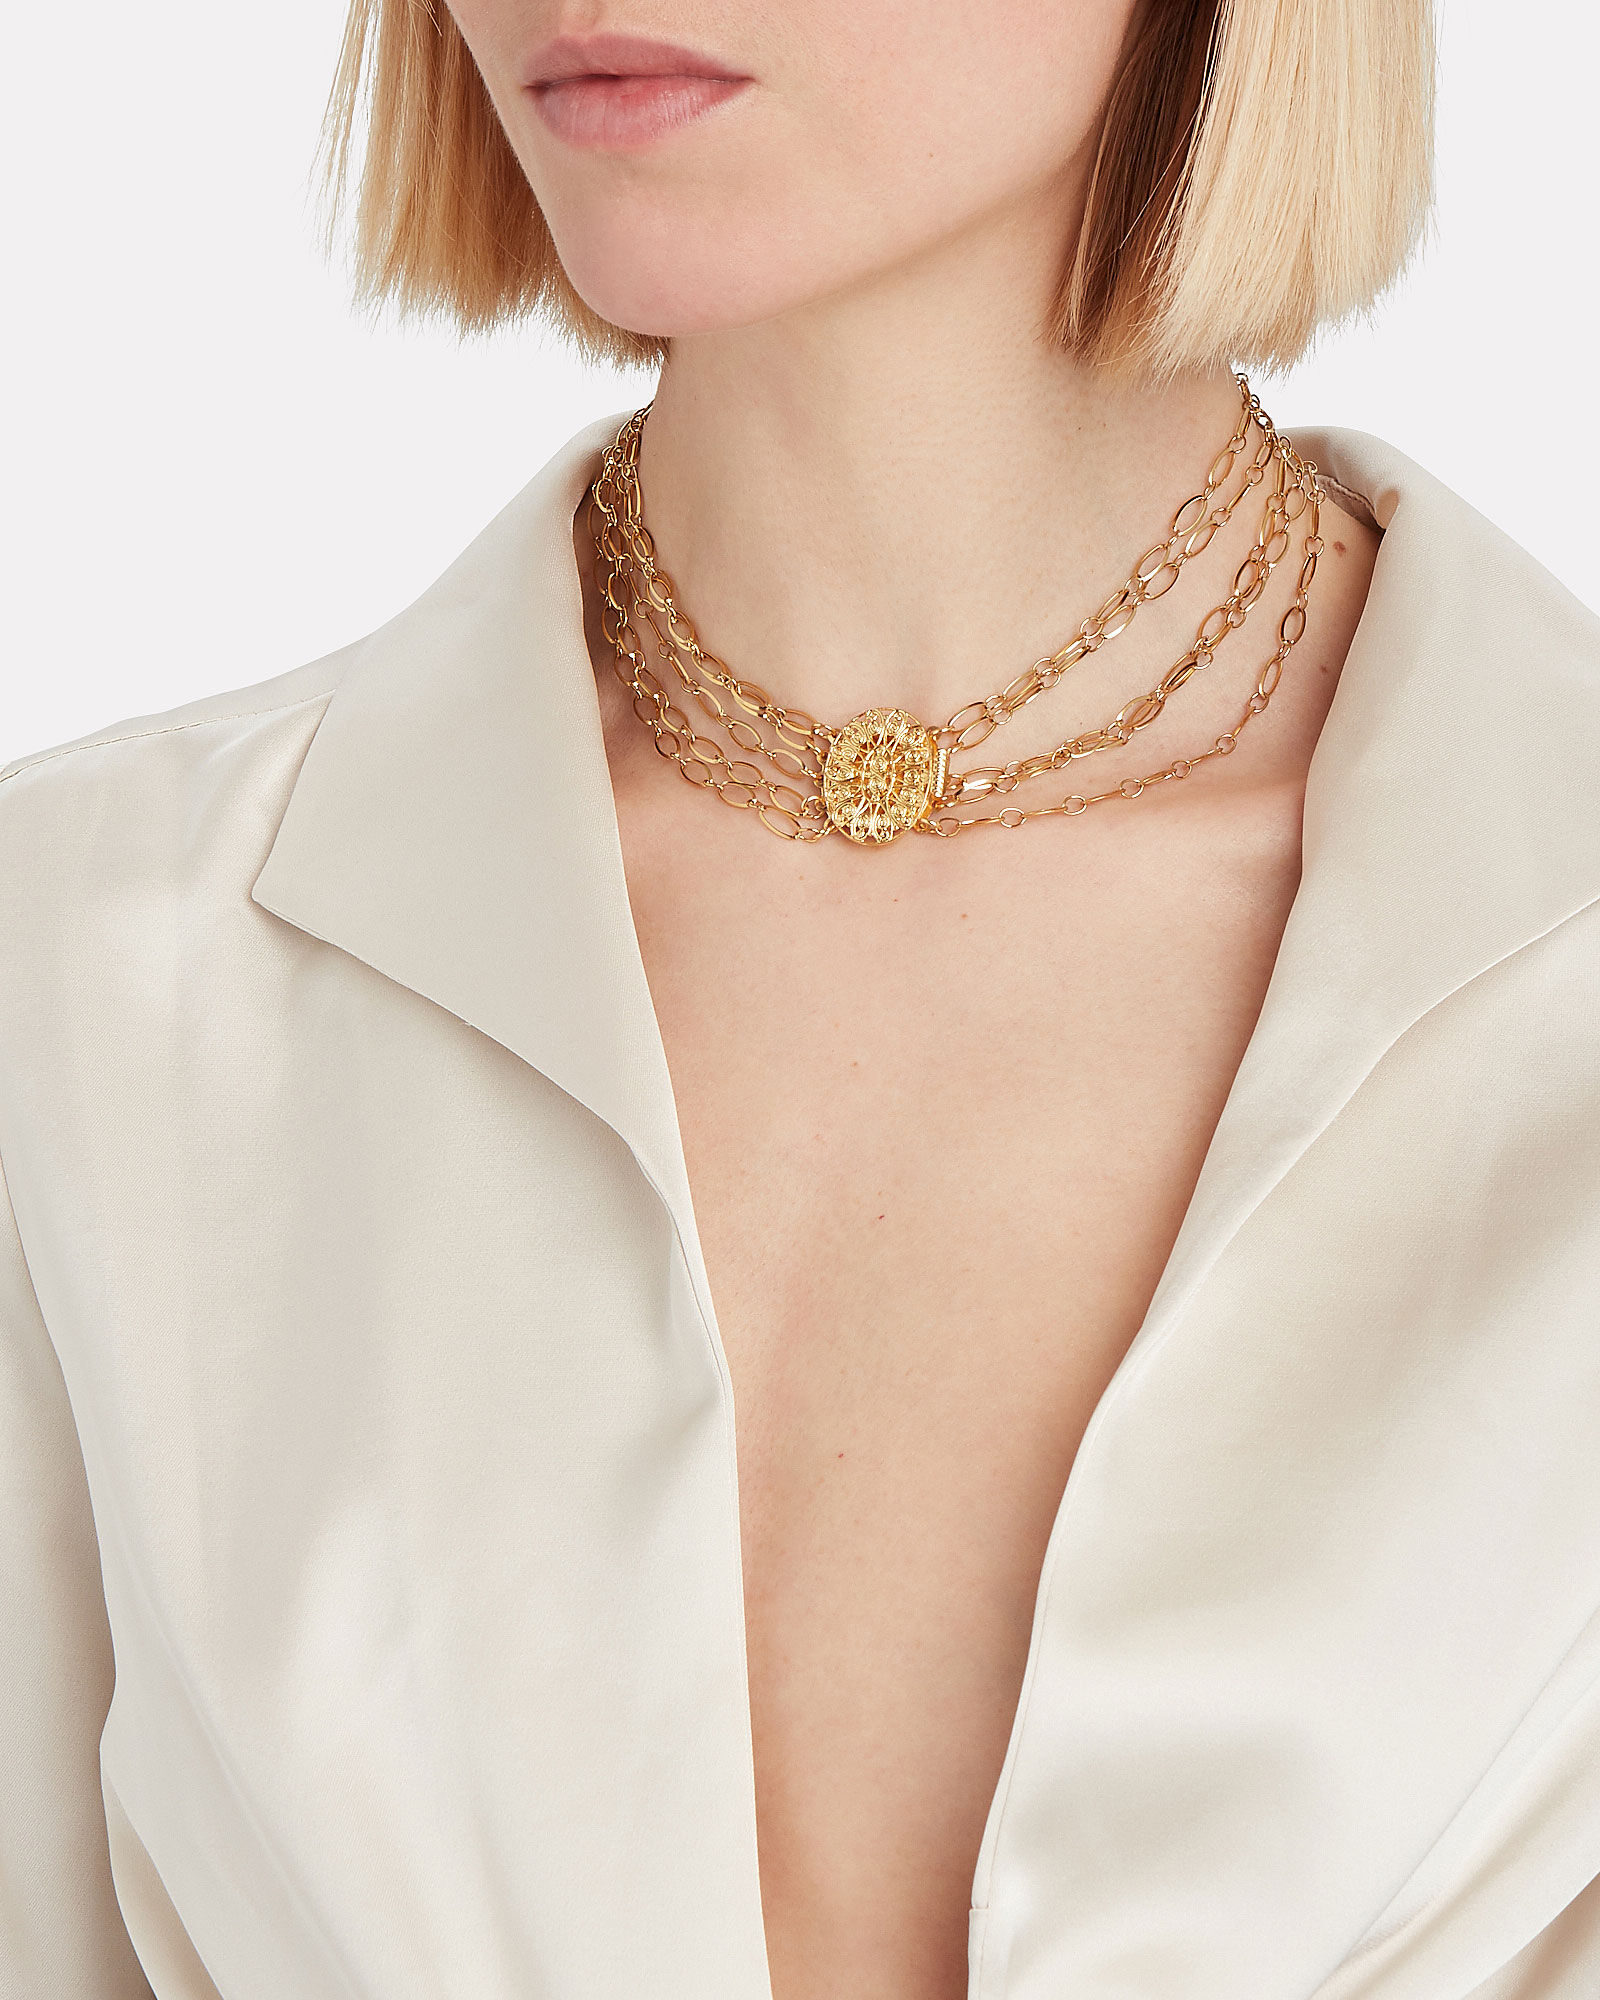 Layered Gold-Plated Chain Choker, GOLD, hi-res